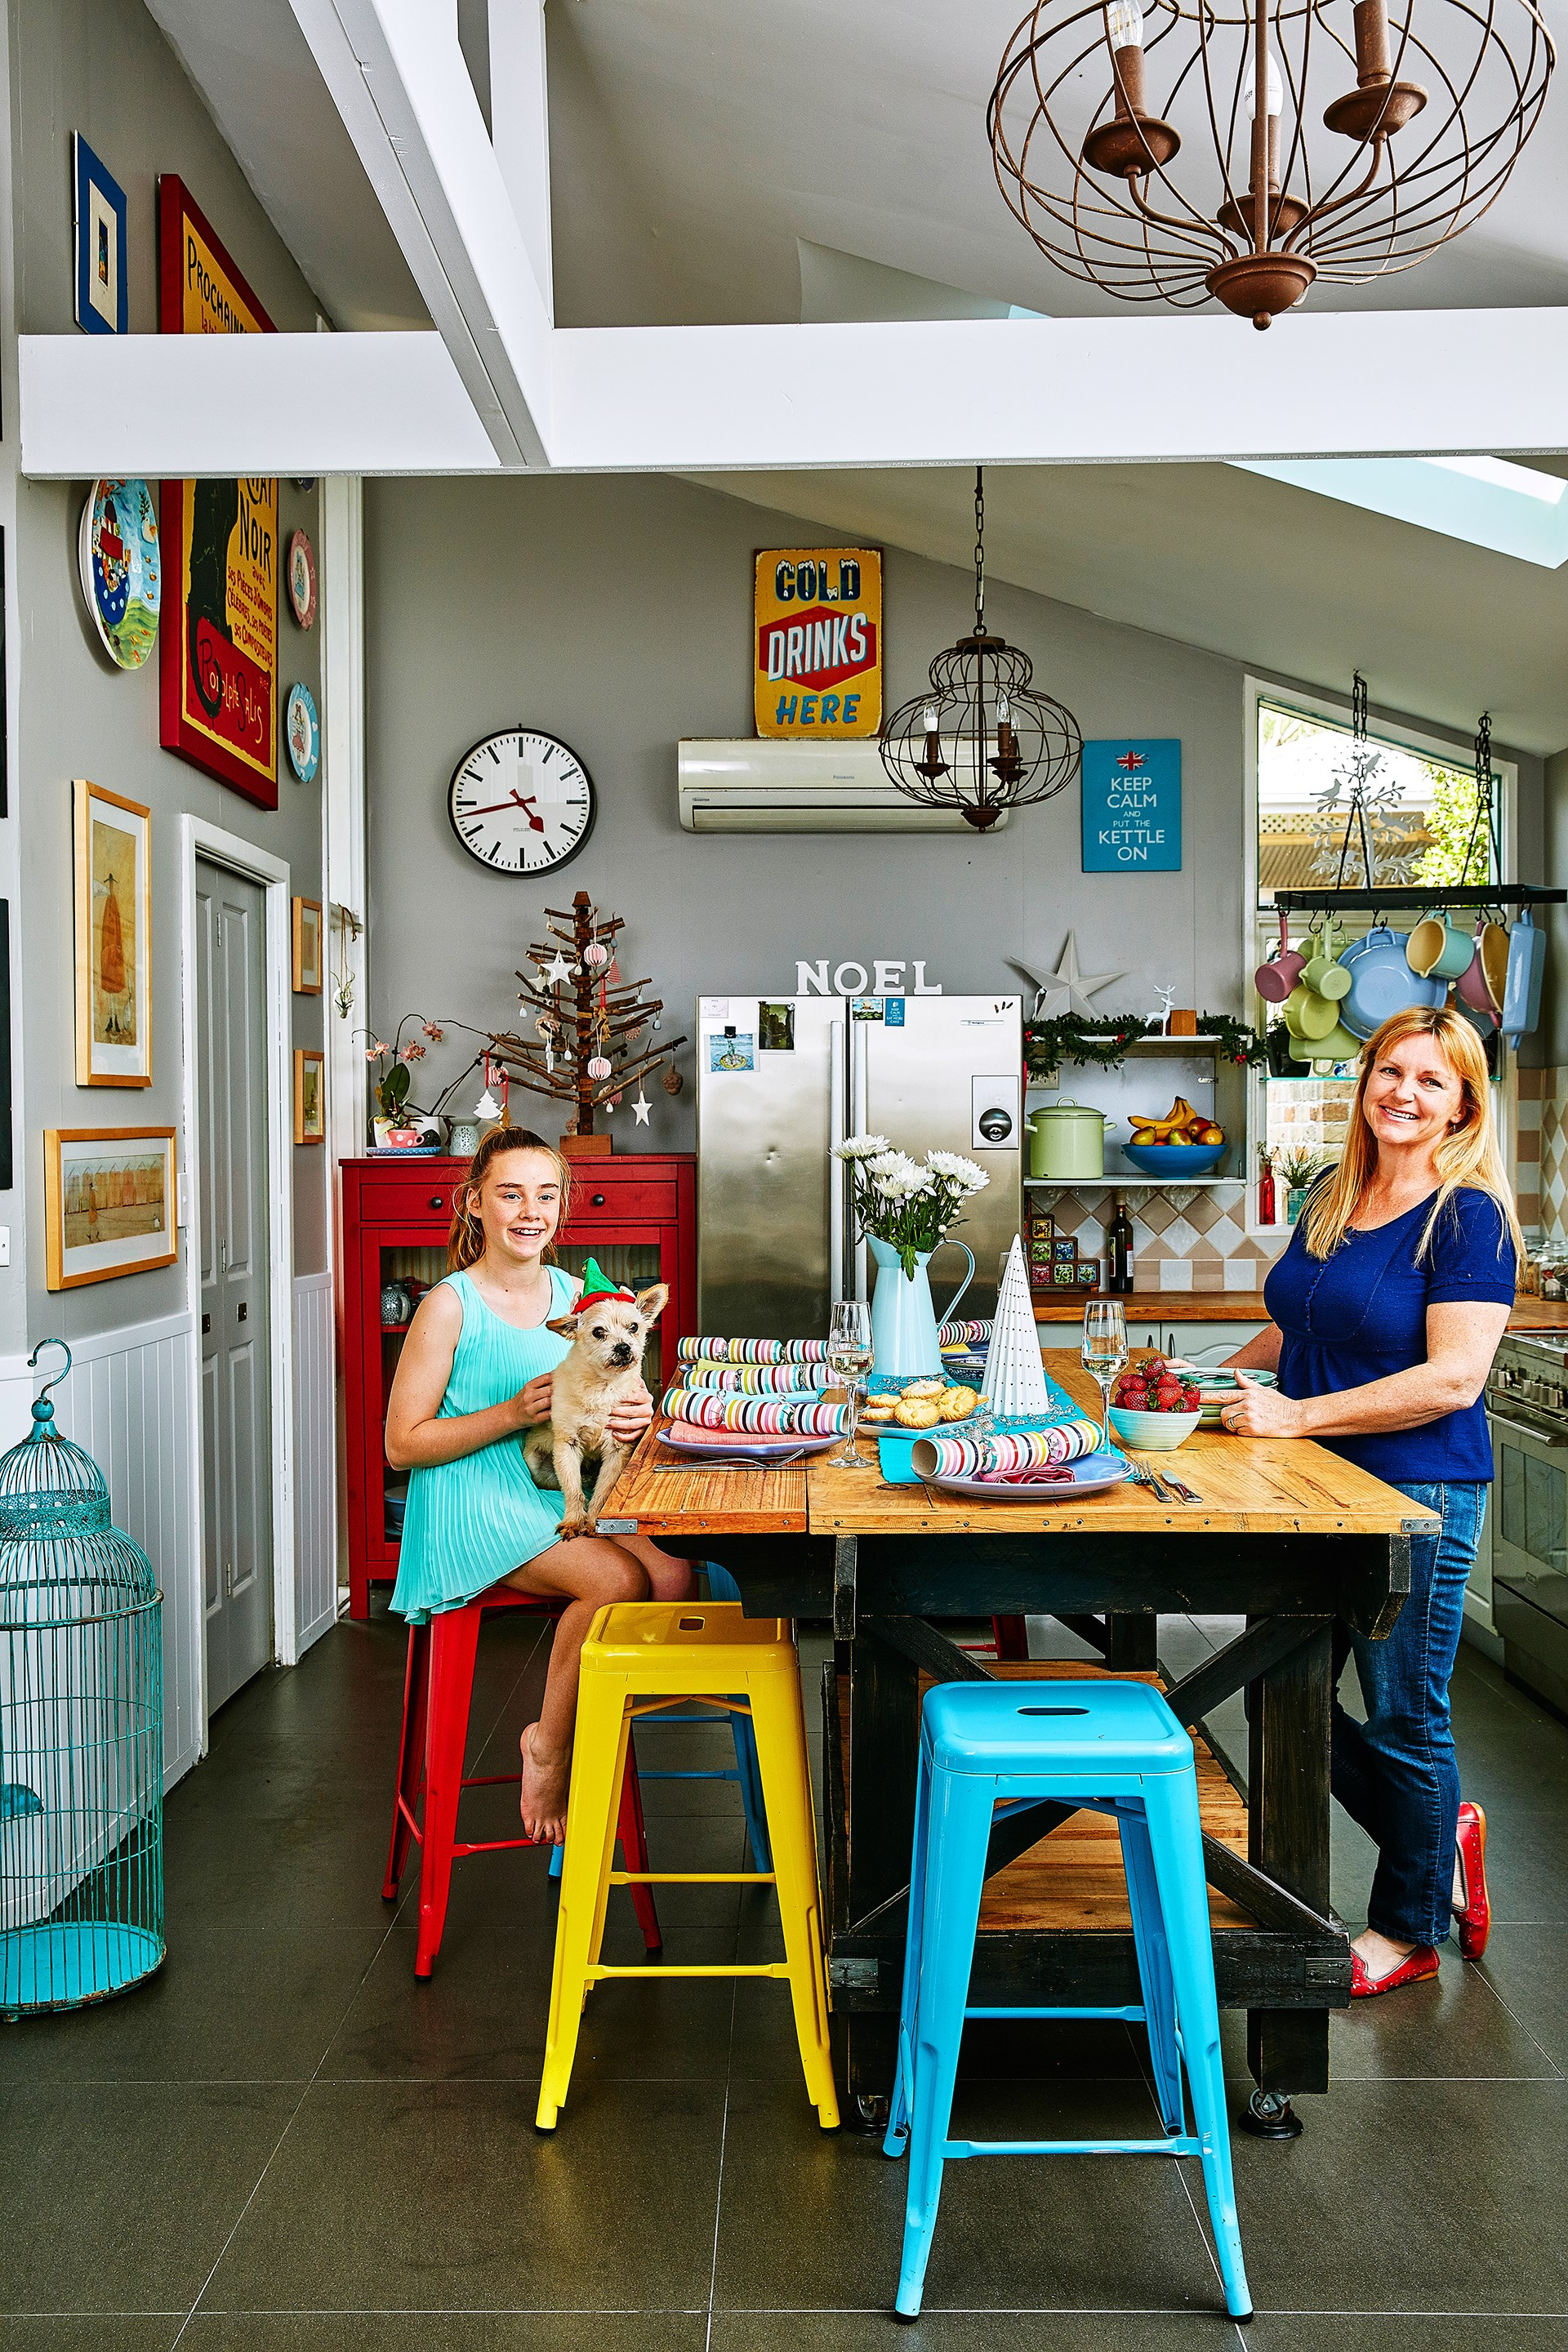 **Steph Clay** This fun family home celebrates eclectic style with a penchant for vintage and second-hand finds. [See the full home here](http://www.homestolove.com.au/a-relaxed-family-home-with-salvaged-style-4572) or [vote for this home](http://www.homestolove.com.au/homes-reader-home-of-the-year-4499).